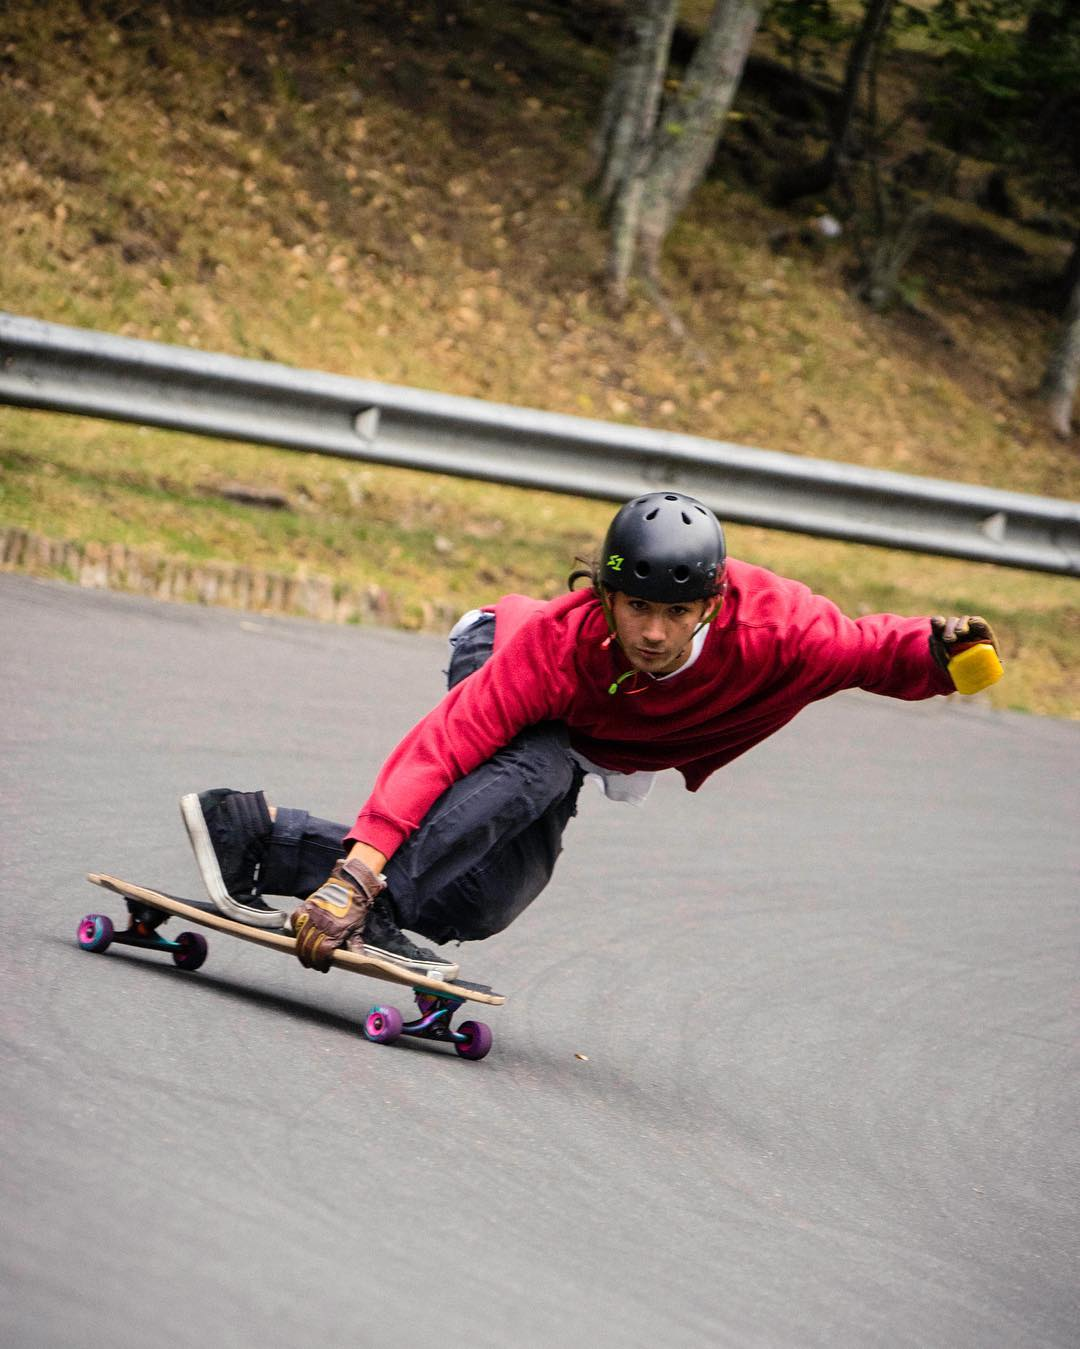 #OrangatangAmbassador @sho_ouellette is down south in Bogotá skating classic local spots.